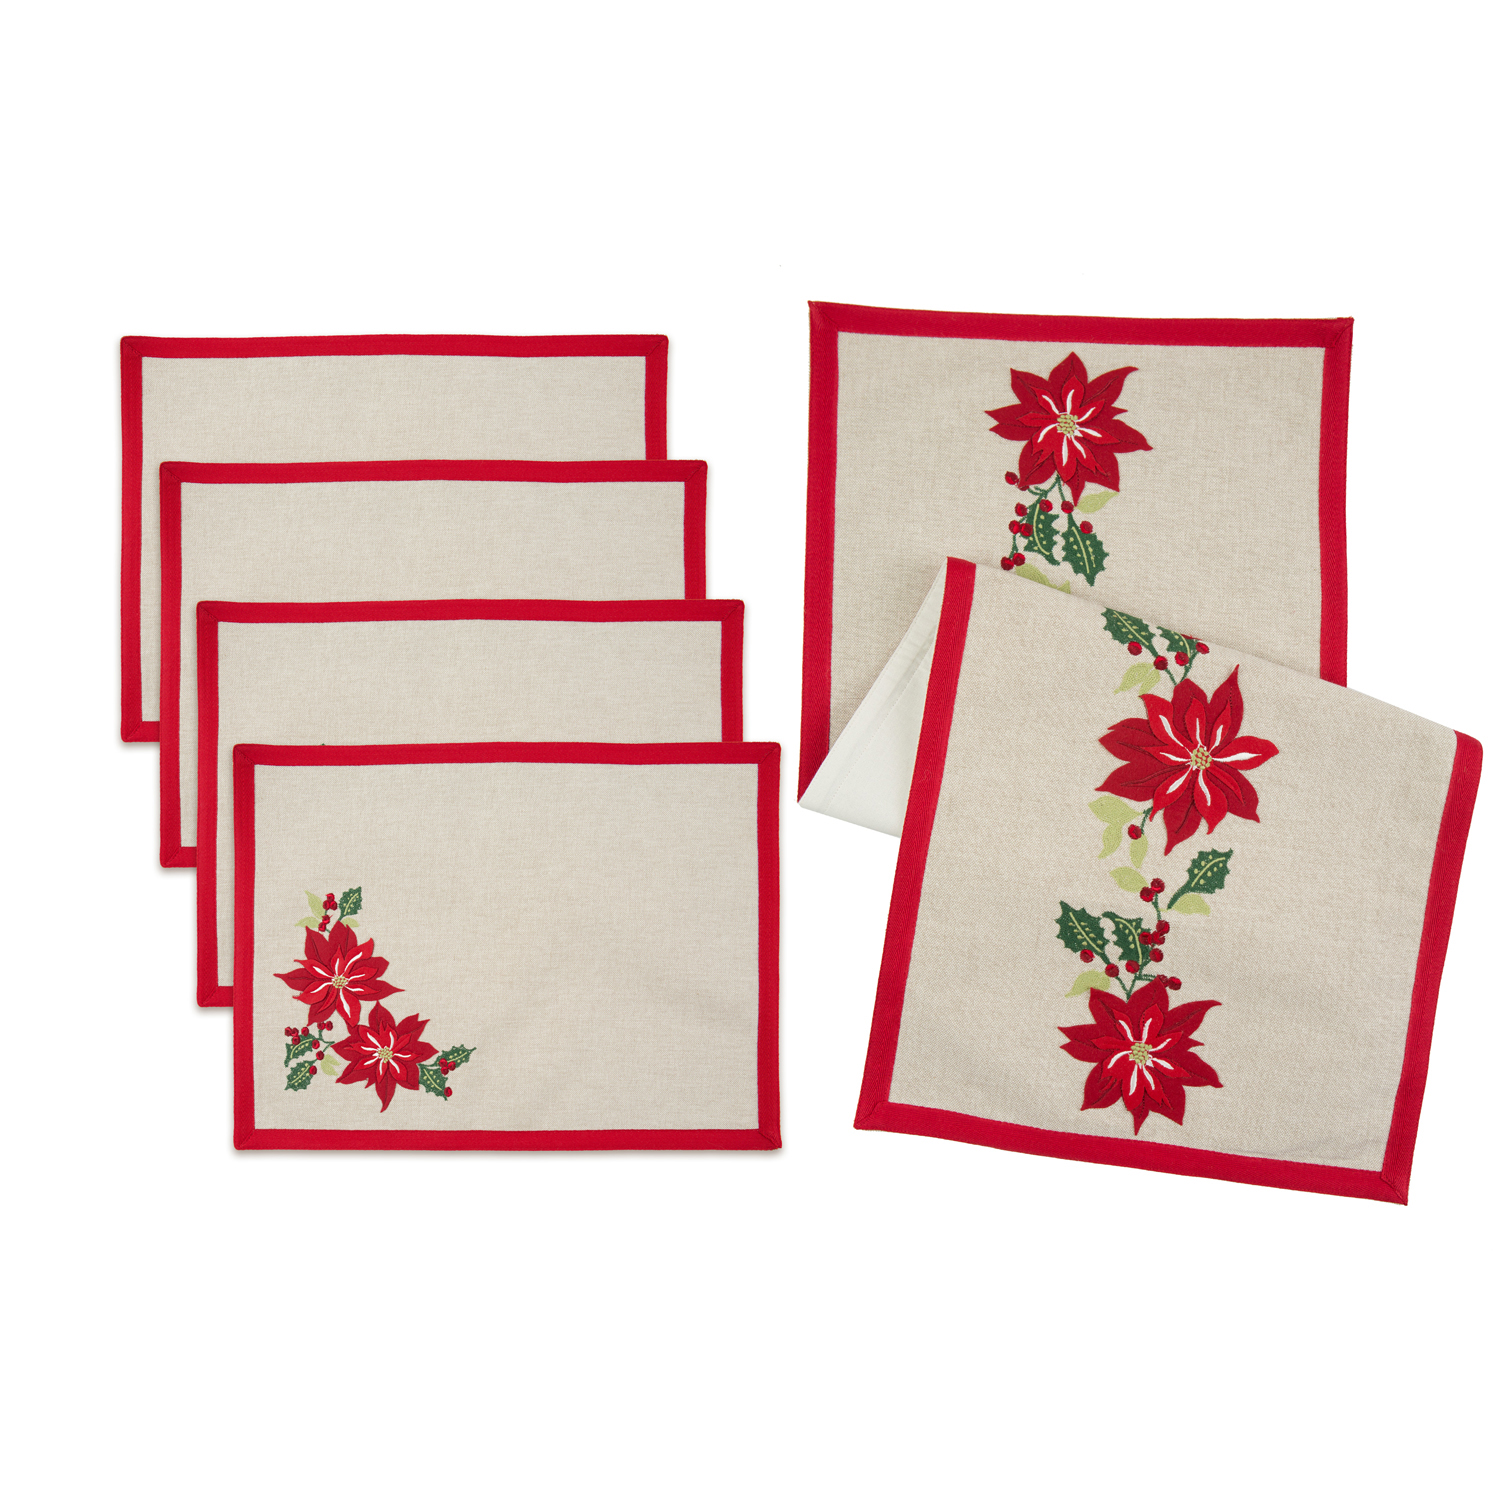 "Better Homes and Gardens 5 Piece Holiday Placemat and Table Runner Set, Poinsettia Embroidery, 14"" x 72"" Table Runner and 14"" x 19"" Placemats"